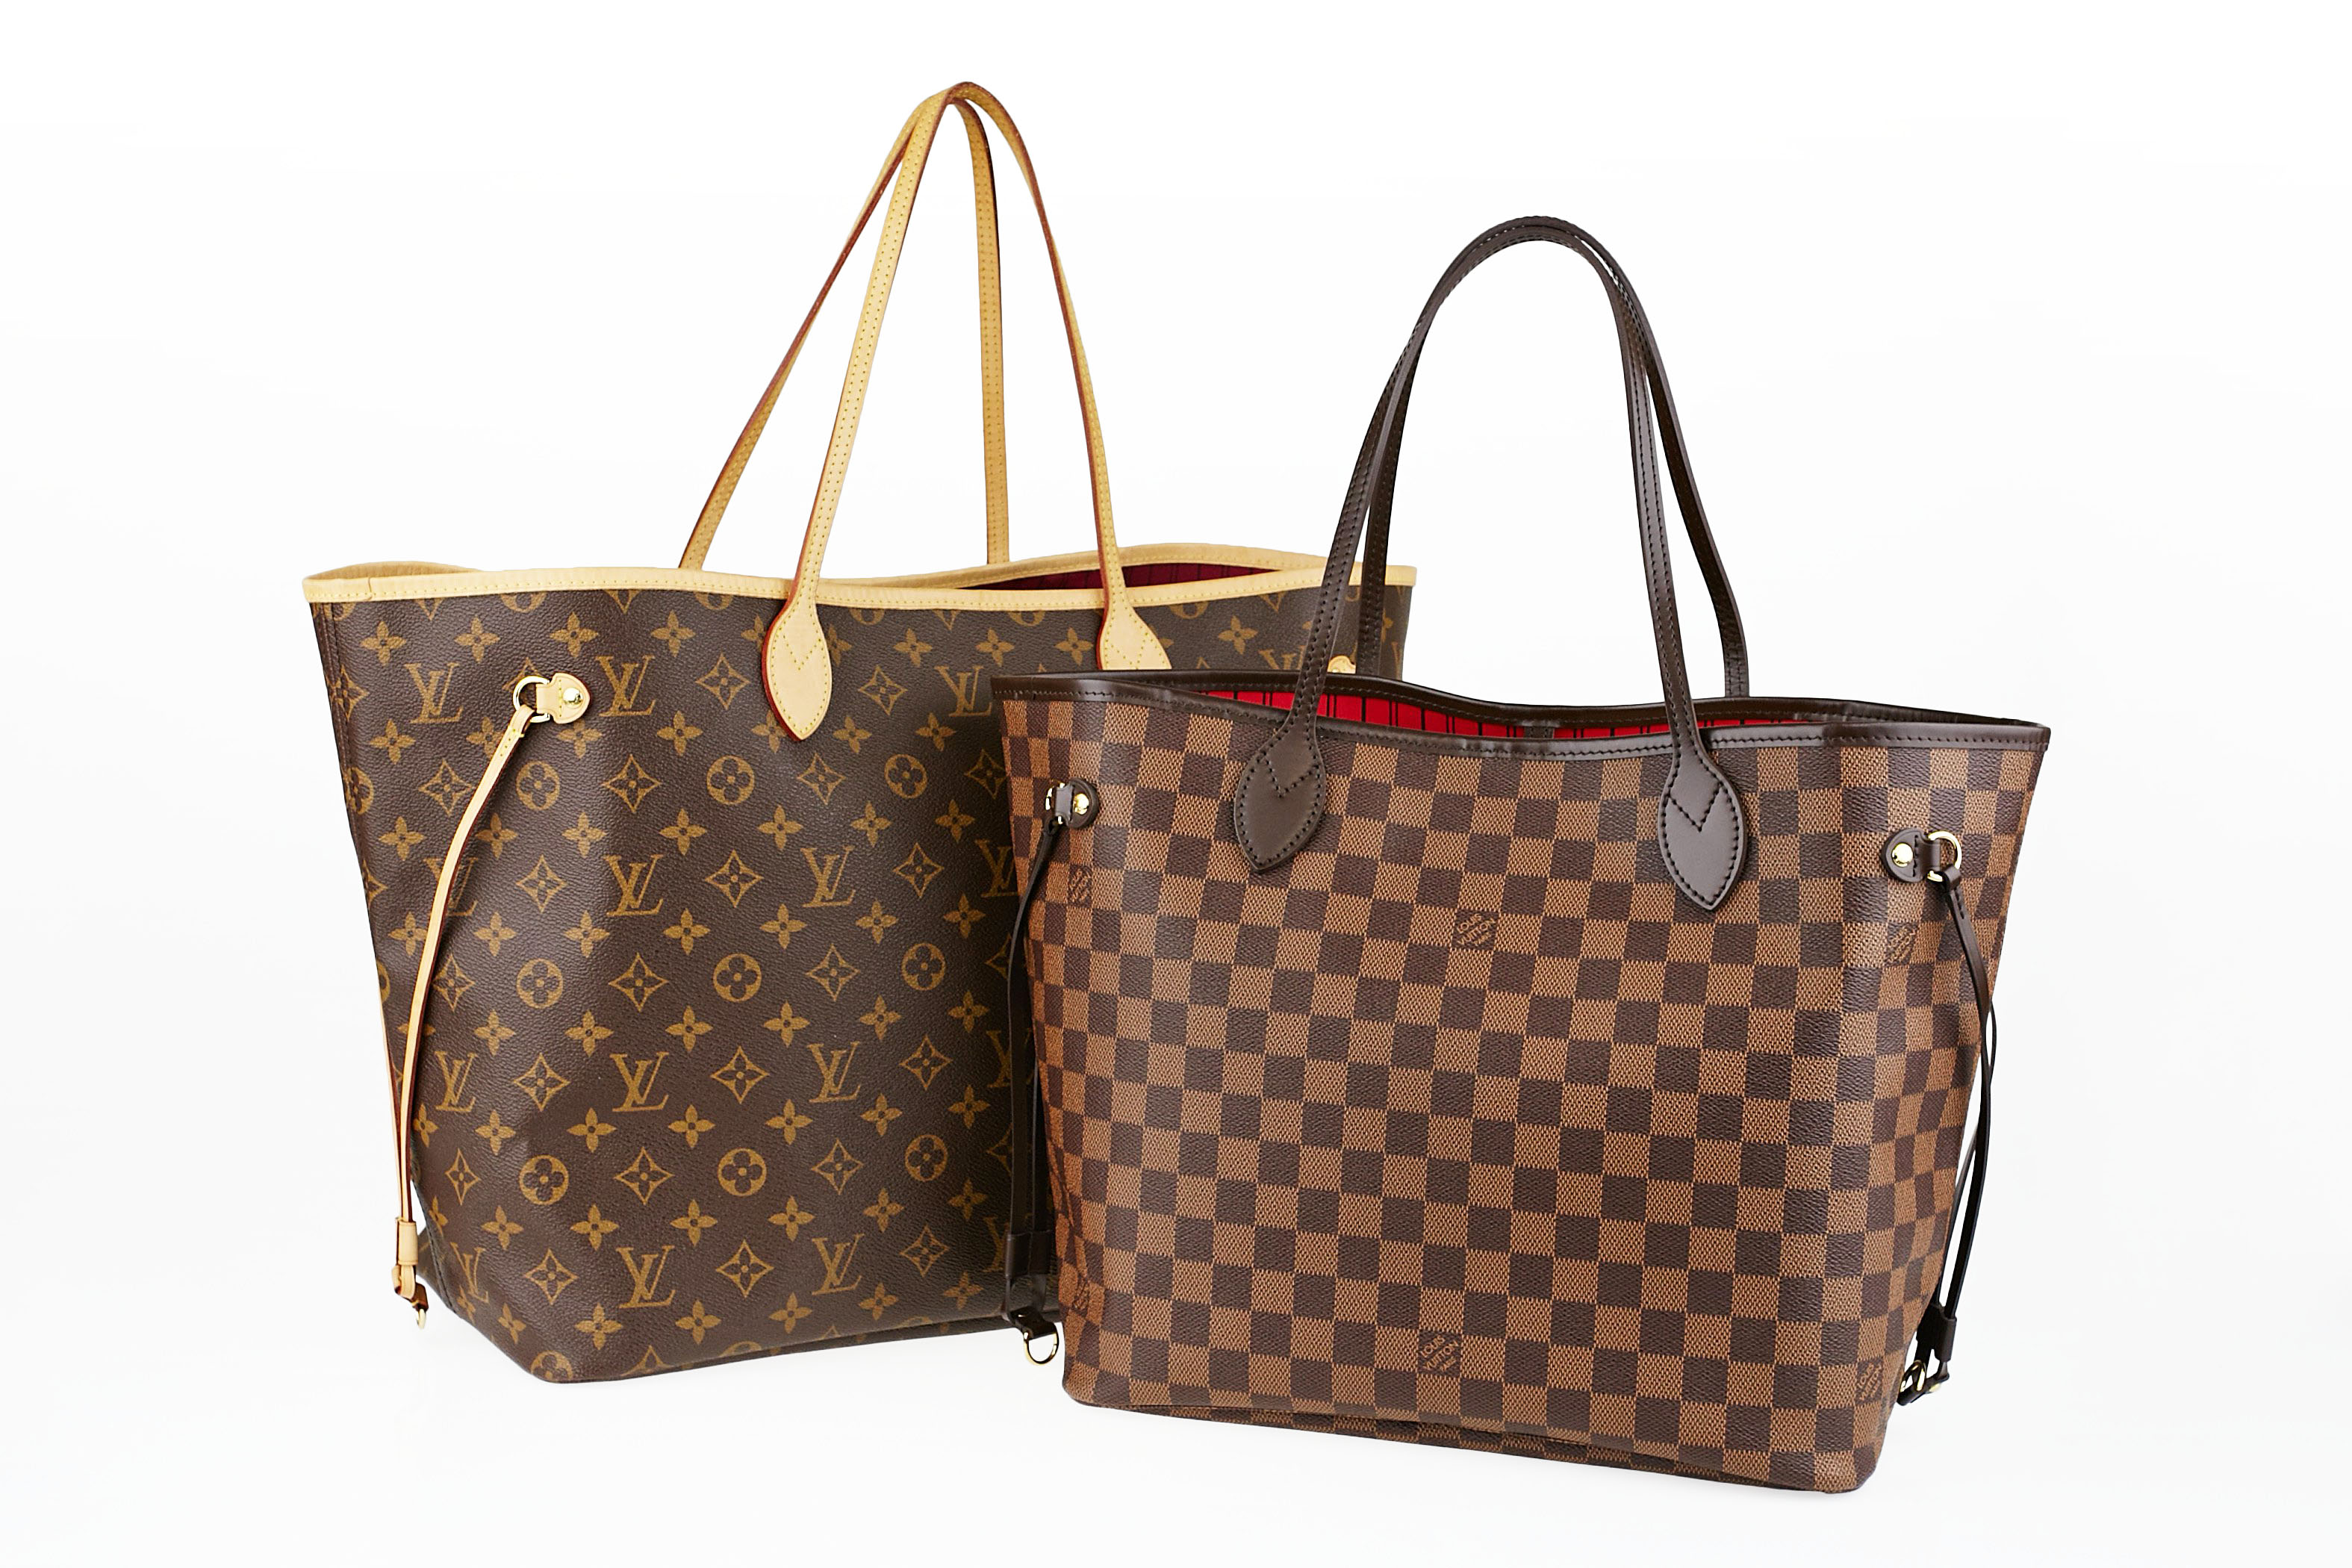 4b97a9ff87705 Louis Vuitton Monogram Canvas Neverfull GM and Damier Neverfull MM Tote  Bags